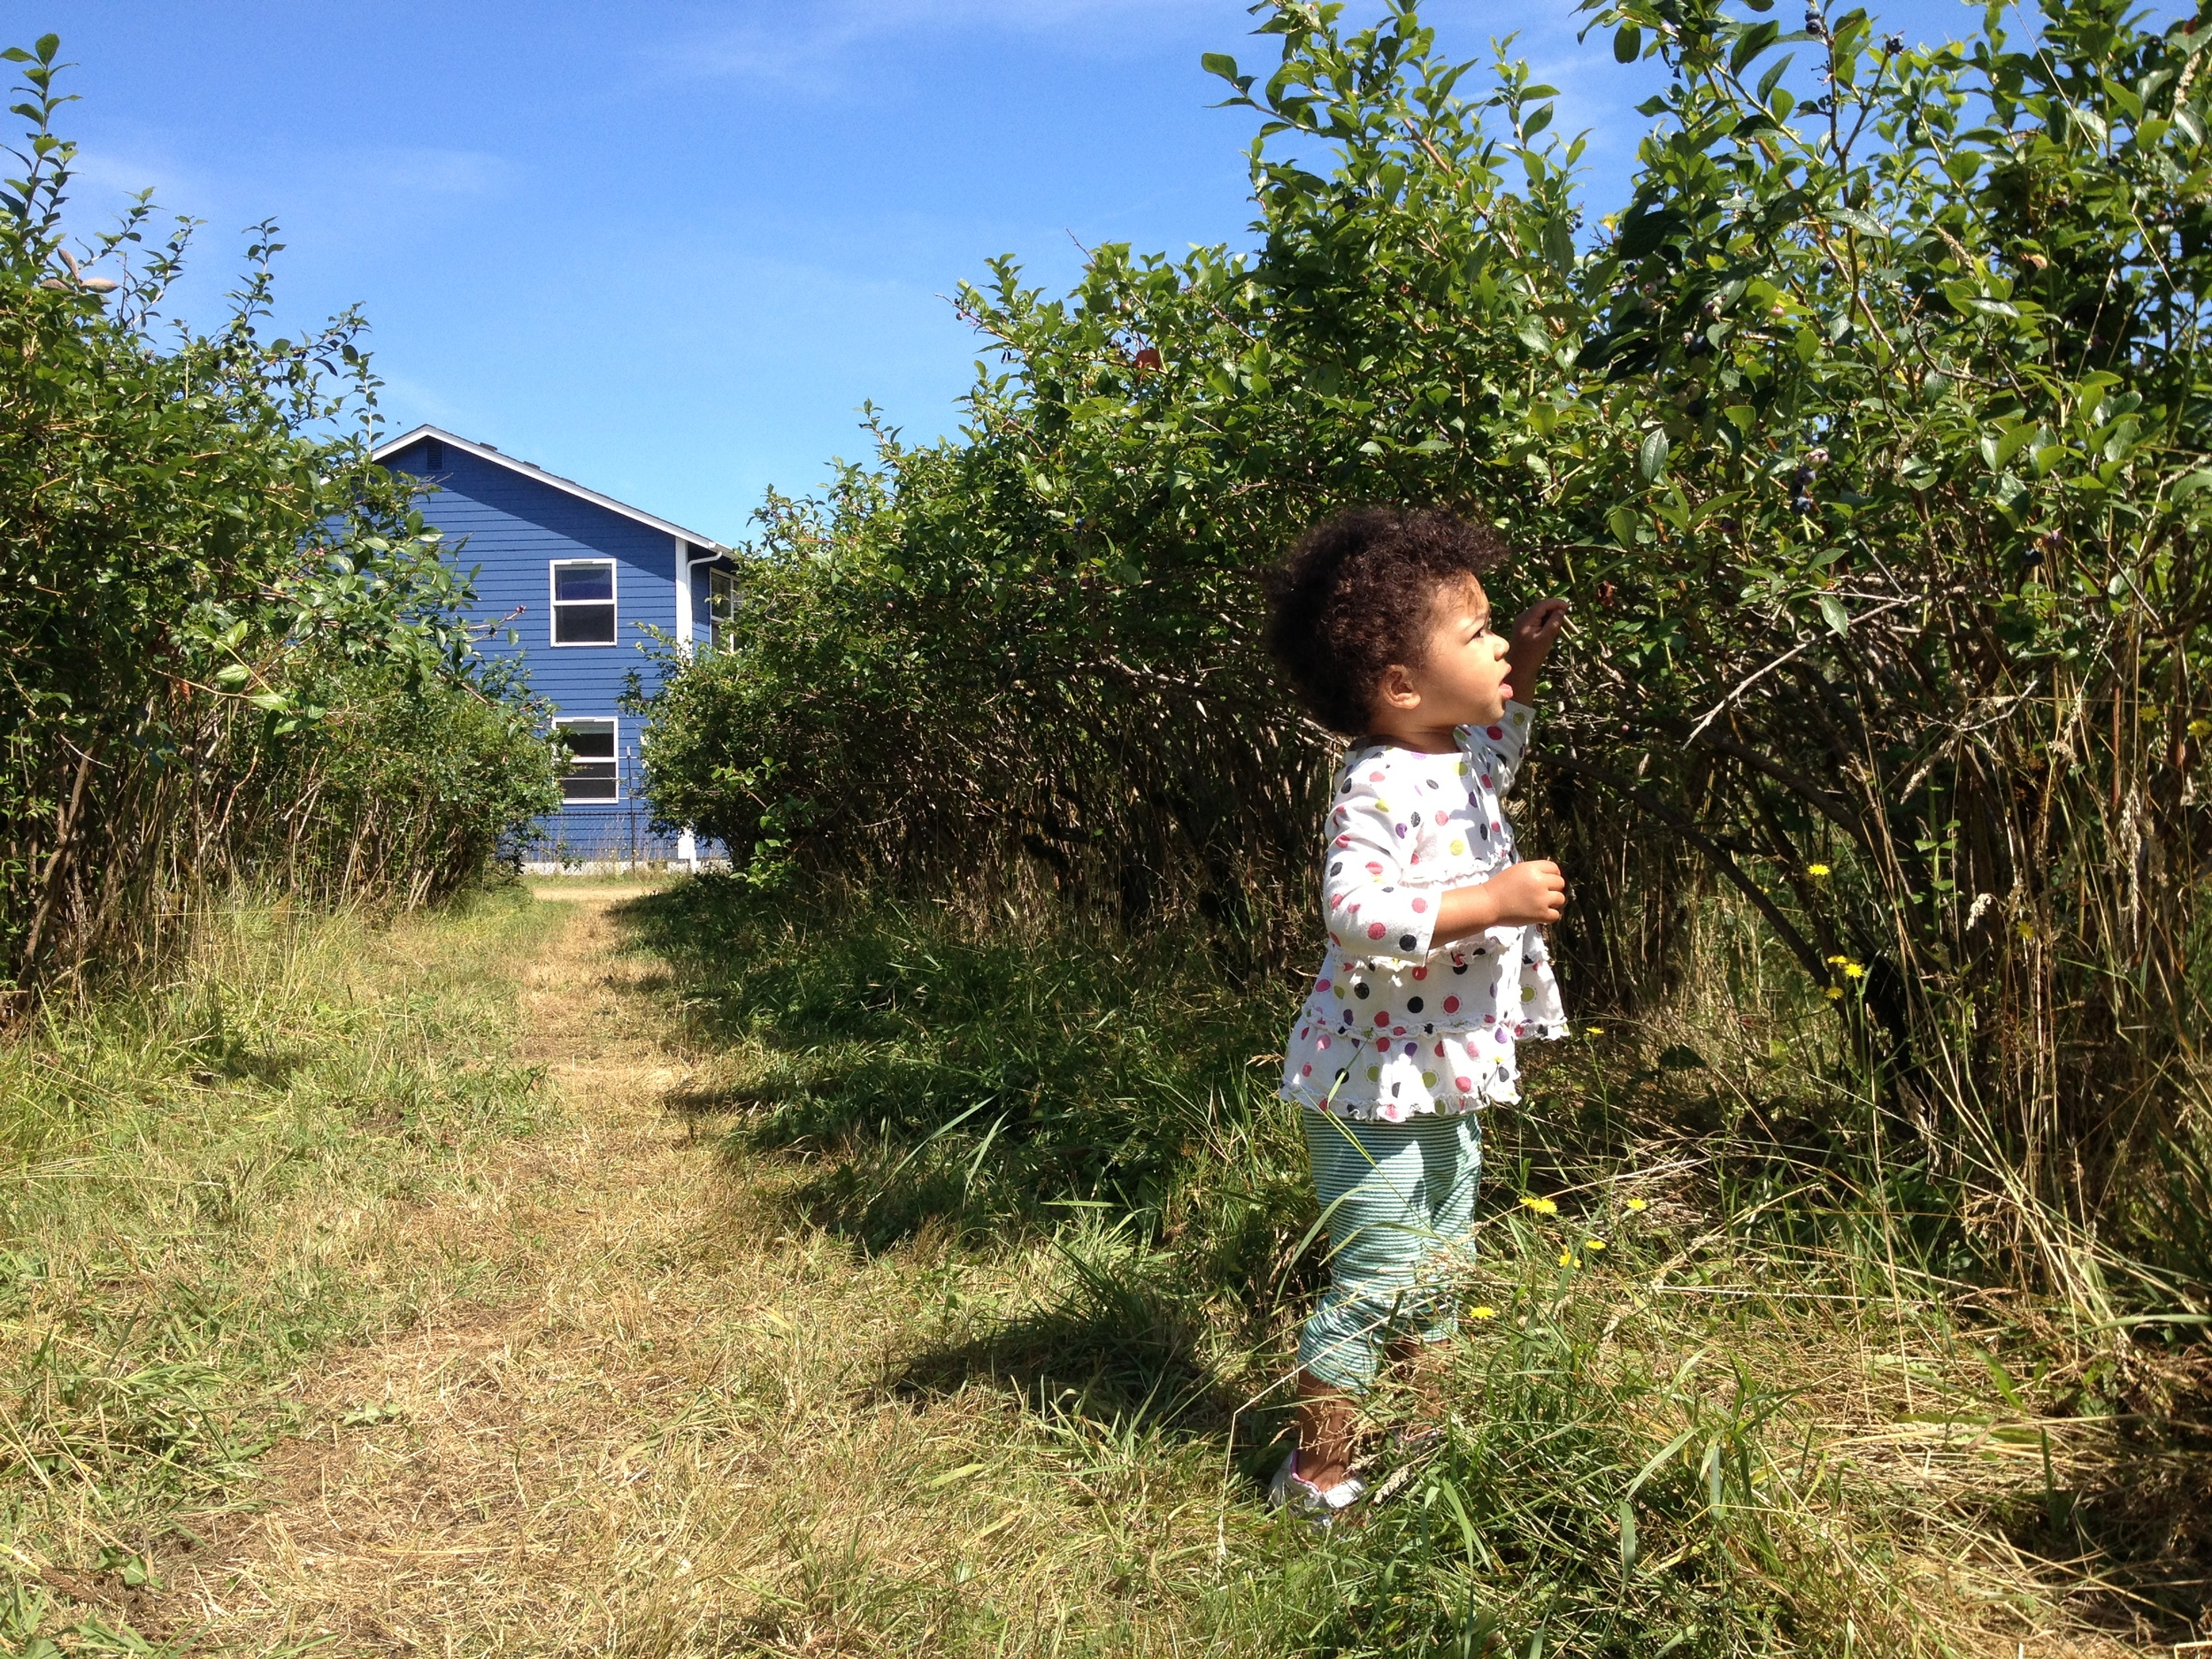 Picking blueberries with my little friend Charlotte, and her mama & baby sister.